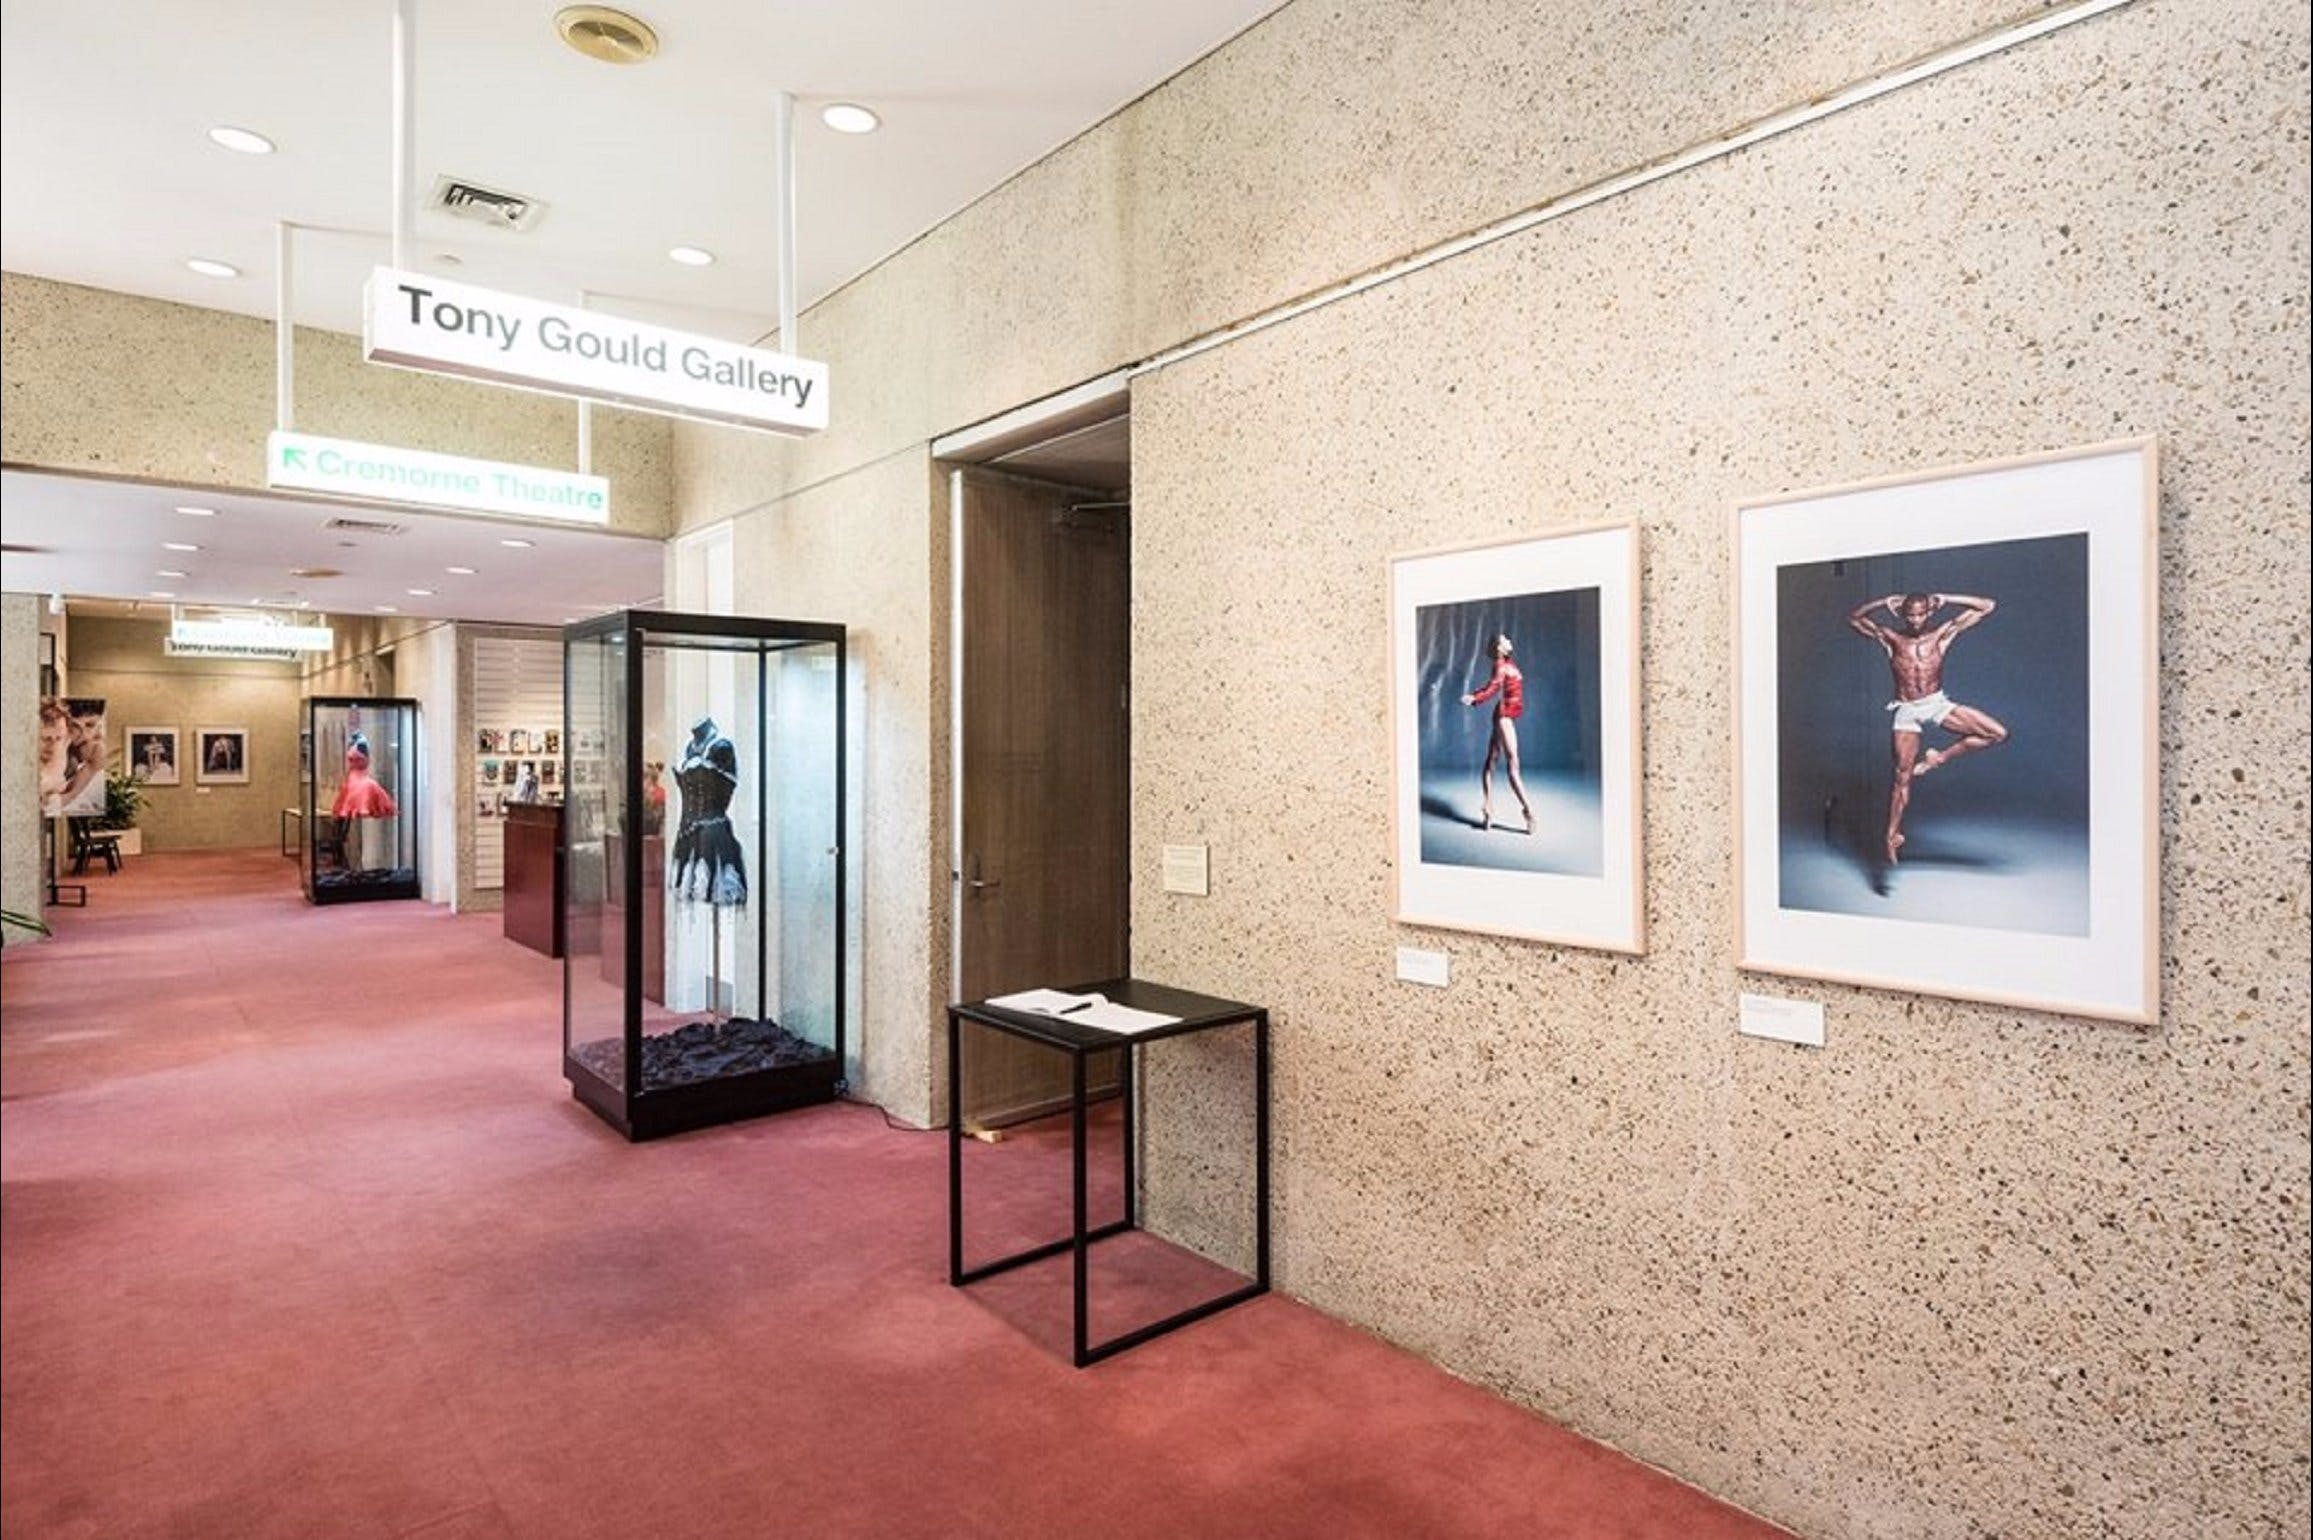 Tony Gould Gallery - Accommodation Bookings